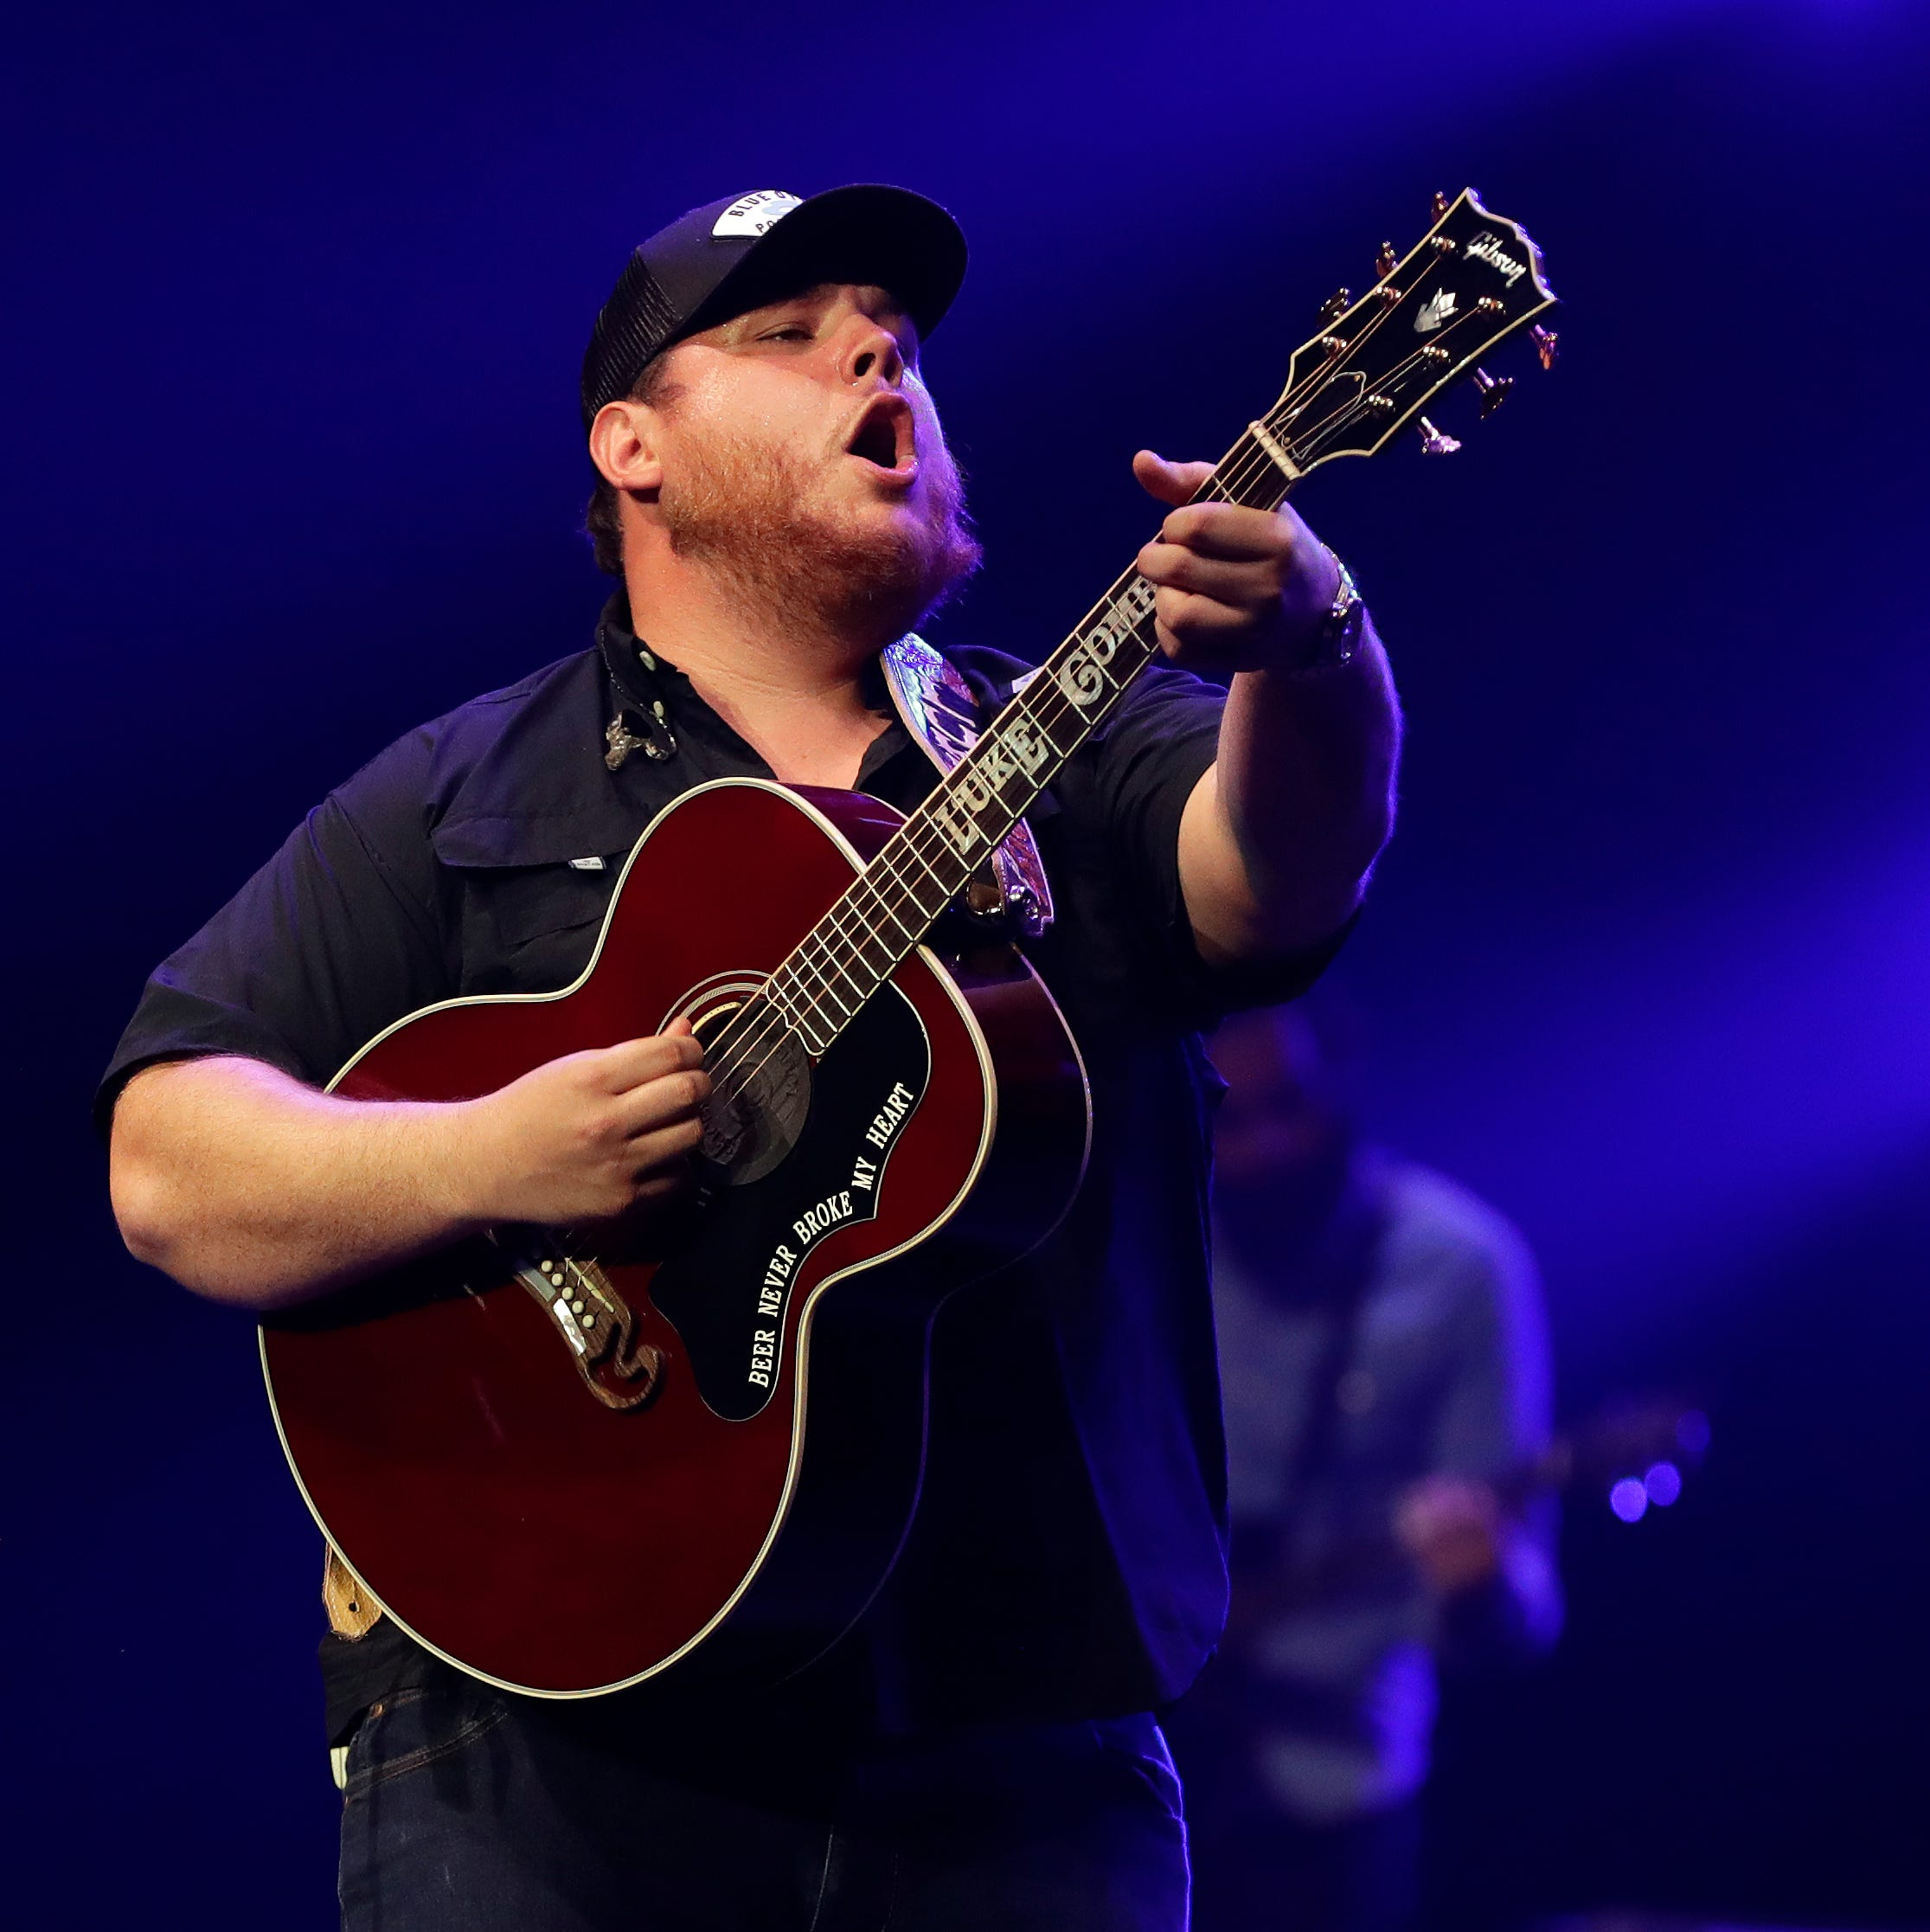 Rising country star Luke Combs is the genuine article at sold-out Resch Center show